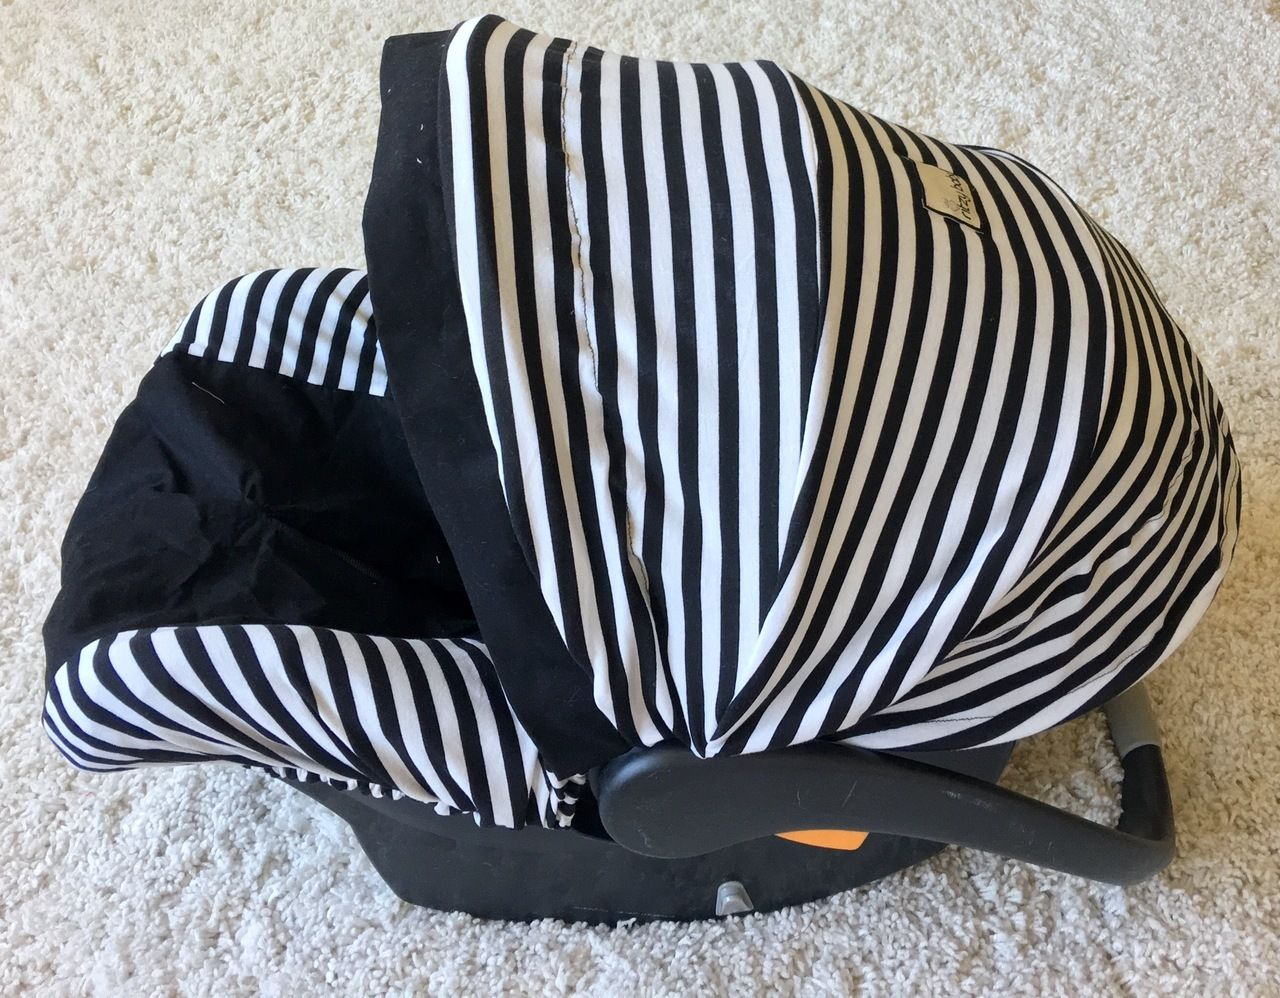 Infant Car Seat Cover - Black and White Stripe Knit